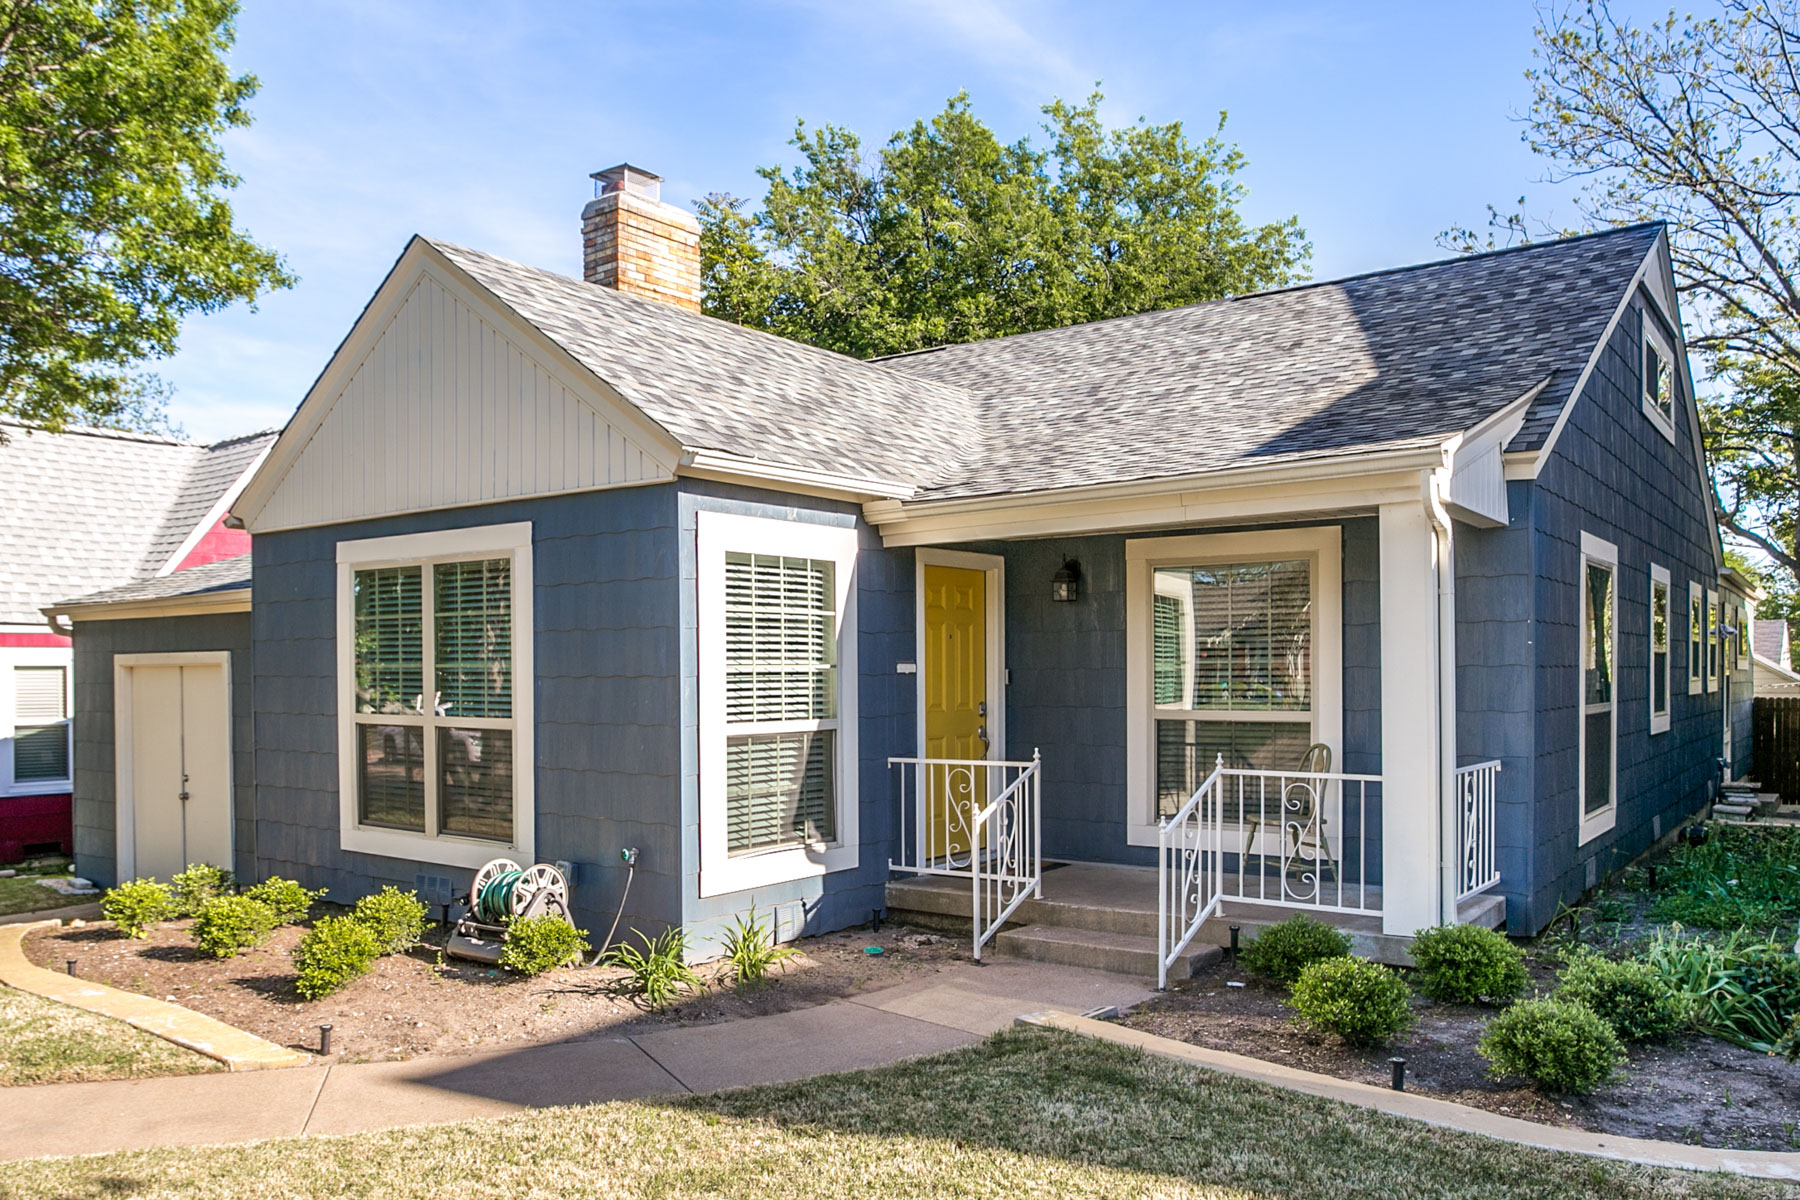 Casa Unifamiliar por un Venta en 4033 Pershing Ave, Fort Worth Fort Worth, Texas, 76107 Estados Unidos